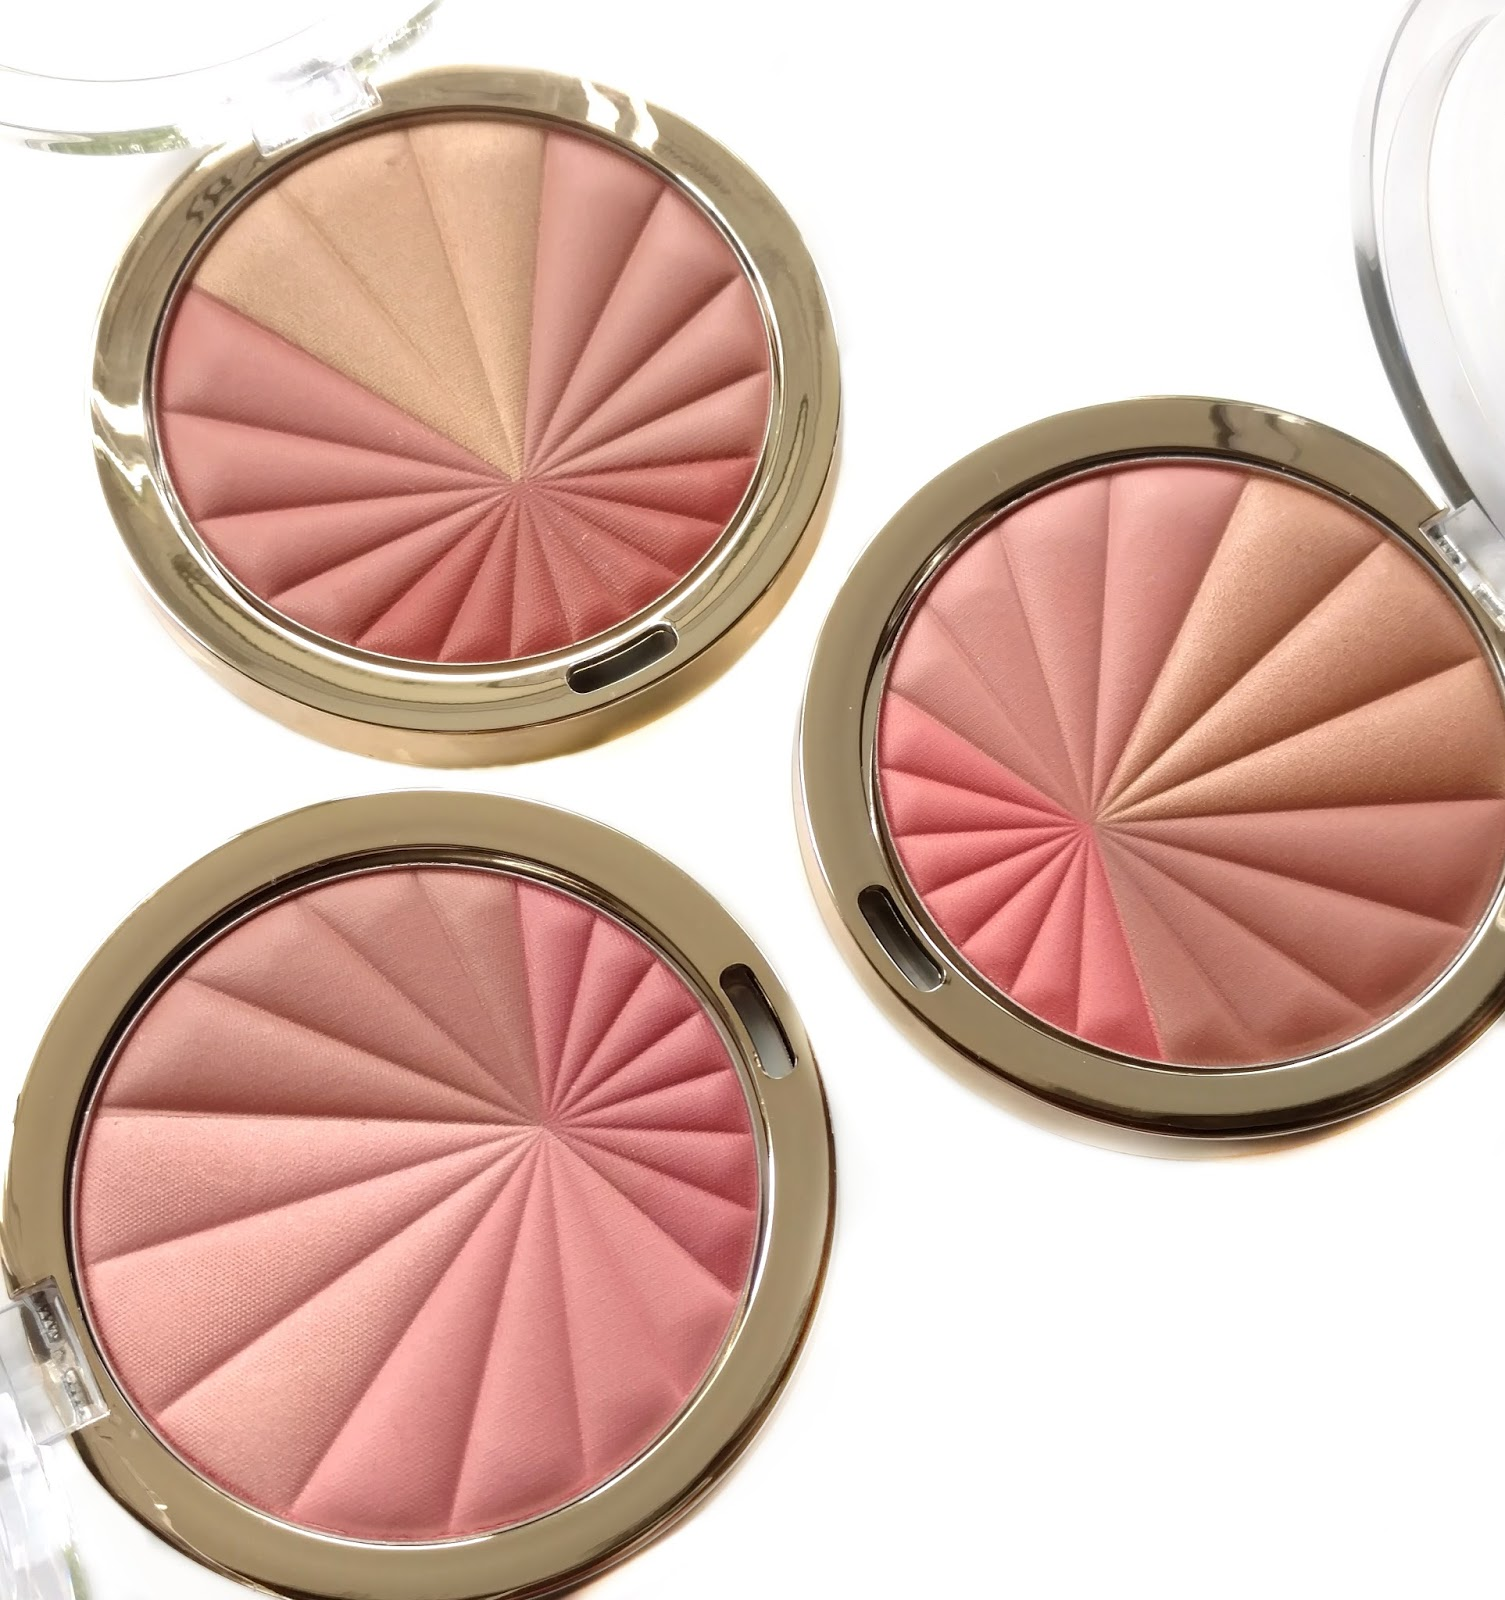 Color harmony online - I Recently Picked Up Three Of The New Milani Color Harmony Blush Palettes 13 When I Saw The Display At Walgreens And Have Had My Eye On These Since They